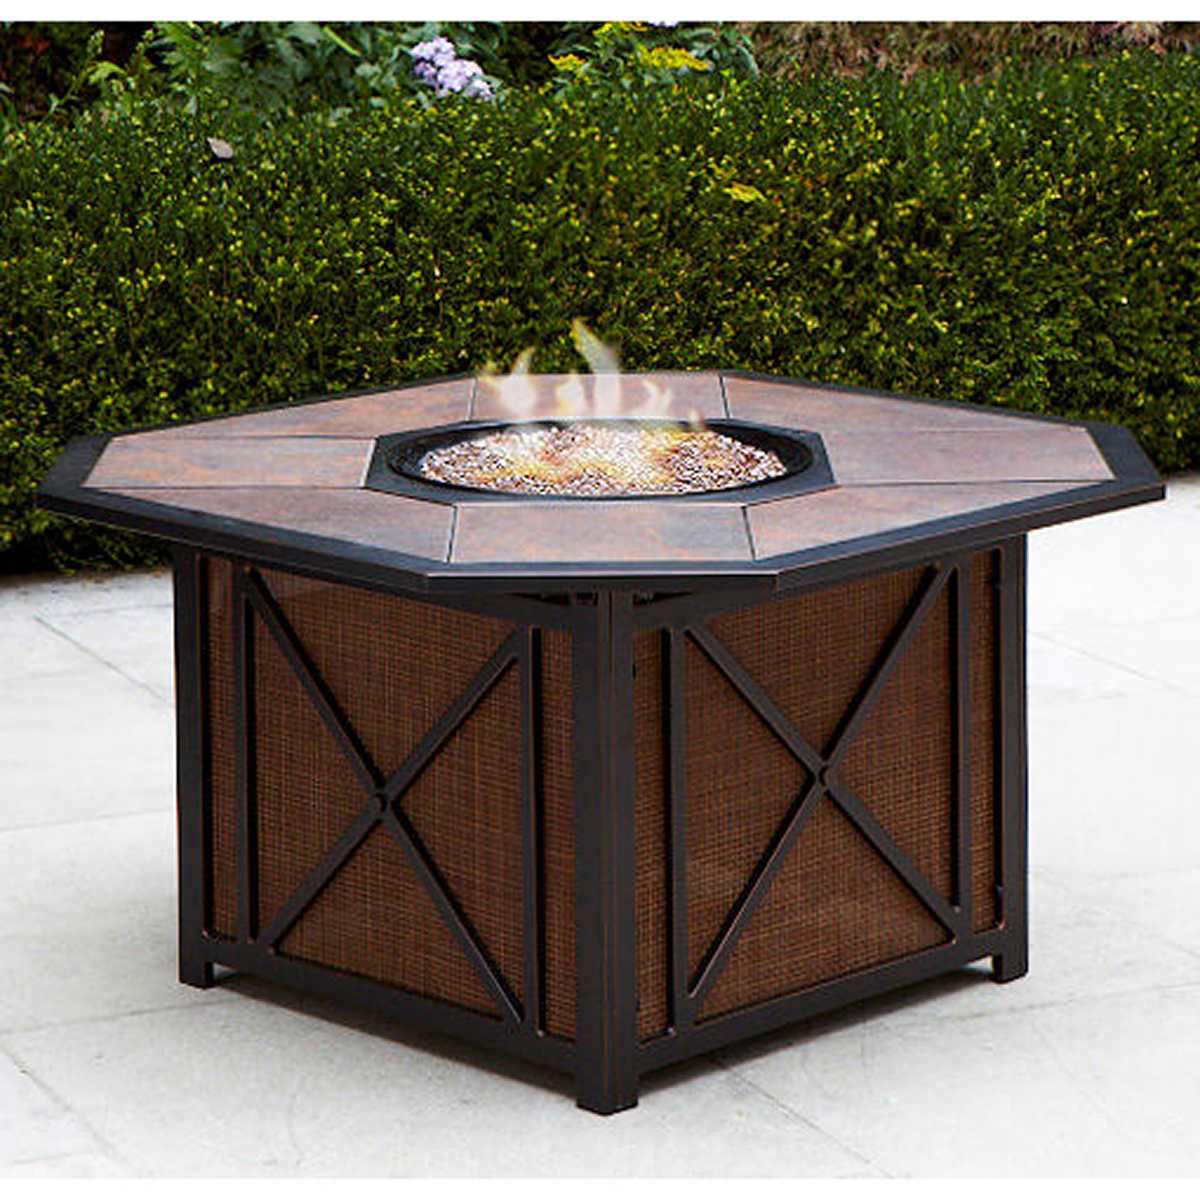 Gold Coast Propane Fire-Pit Table - Fire Pit